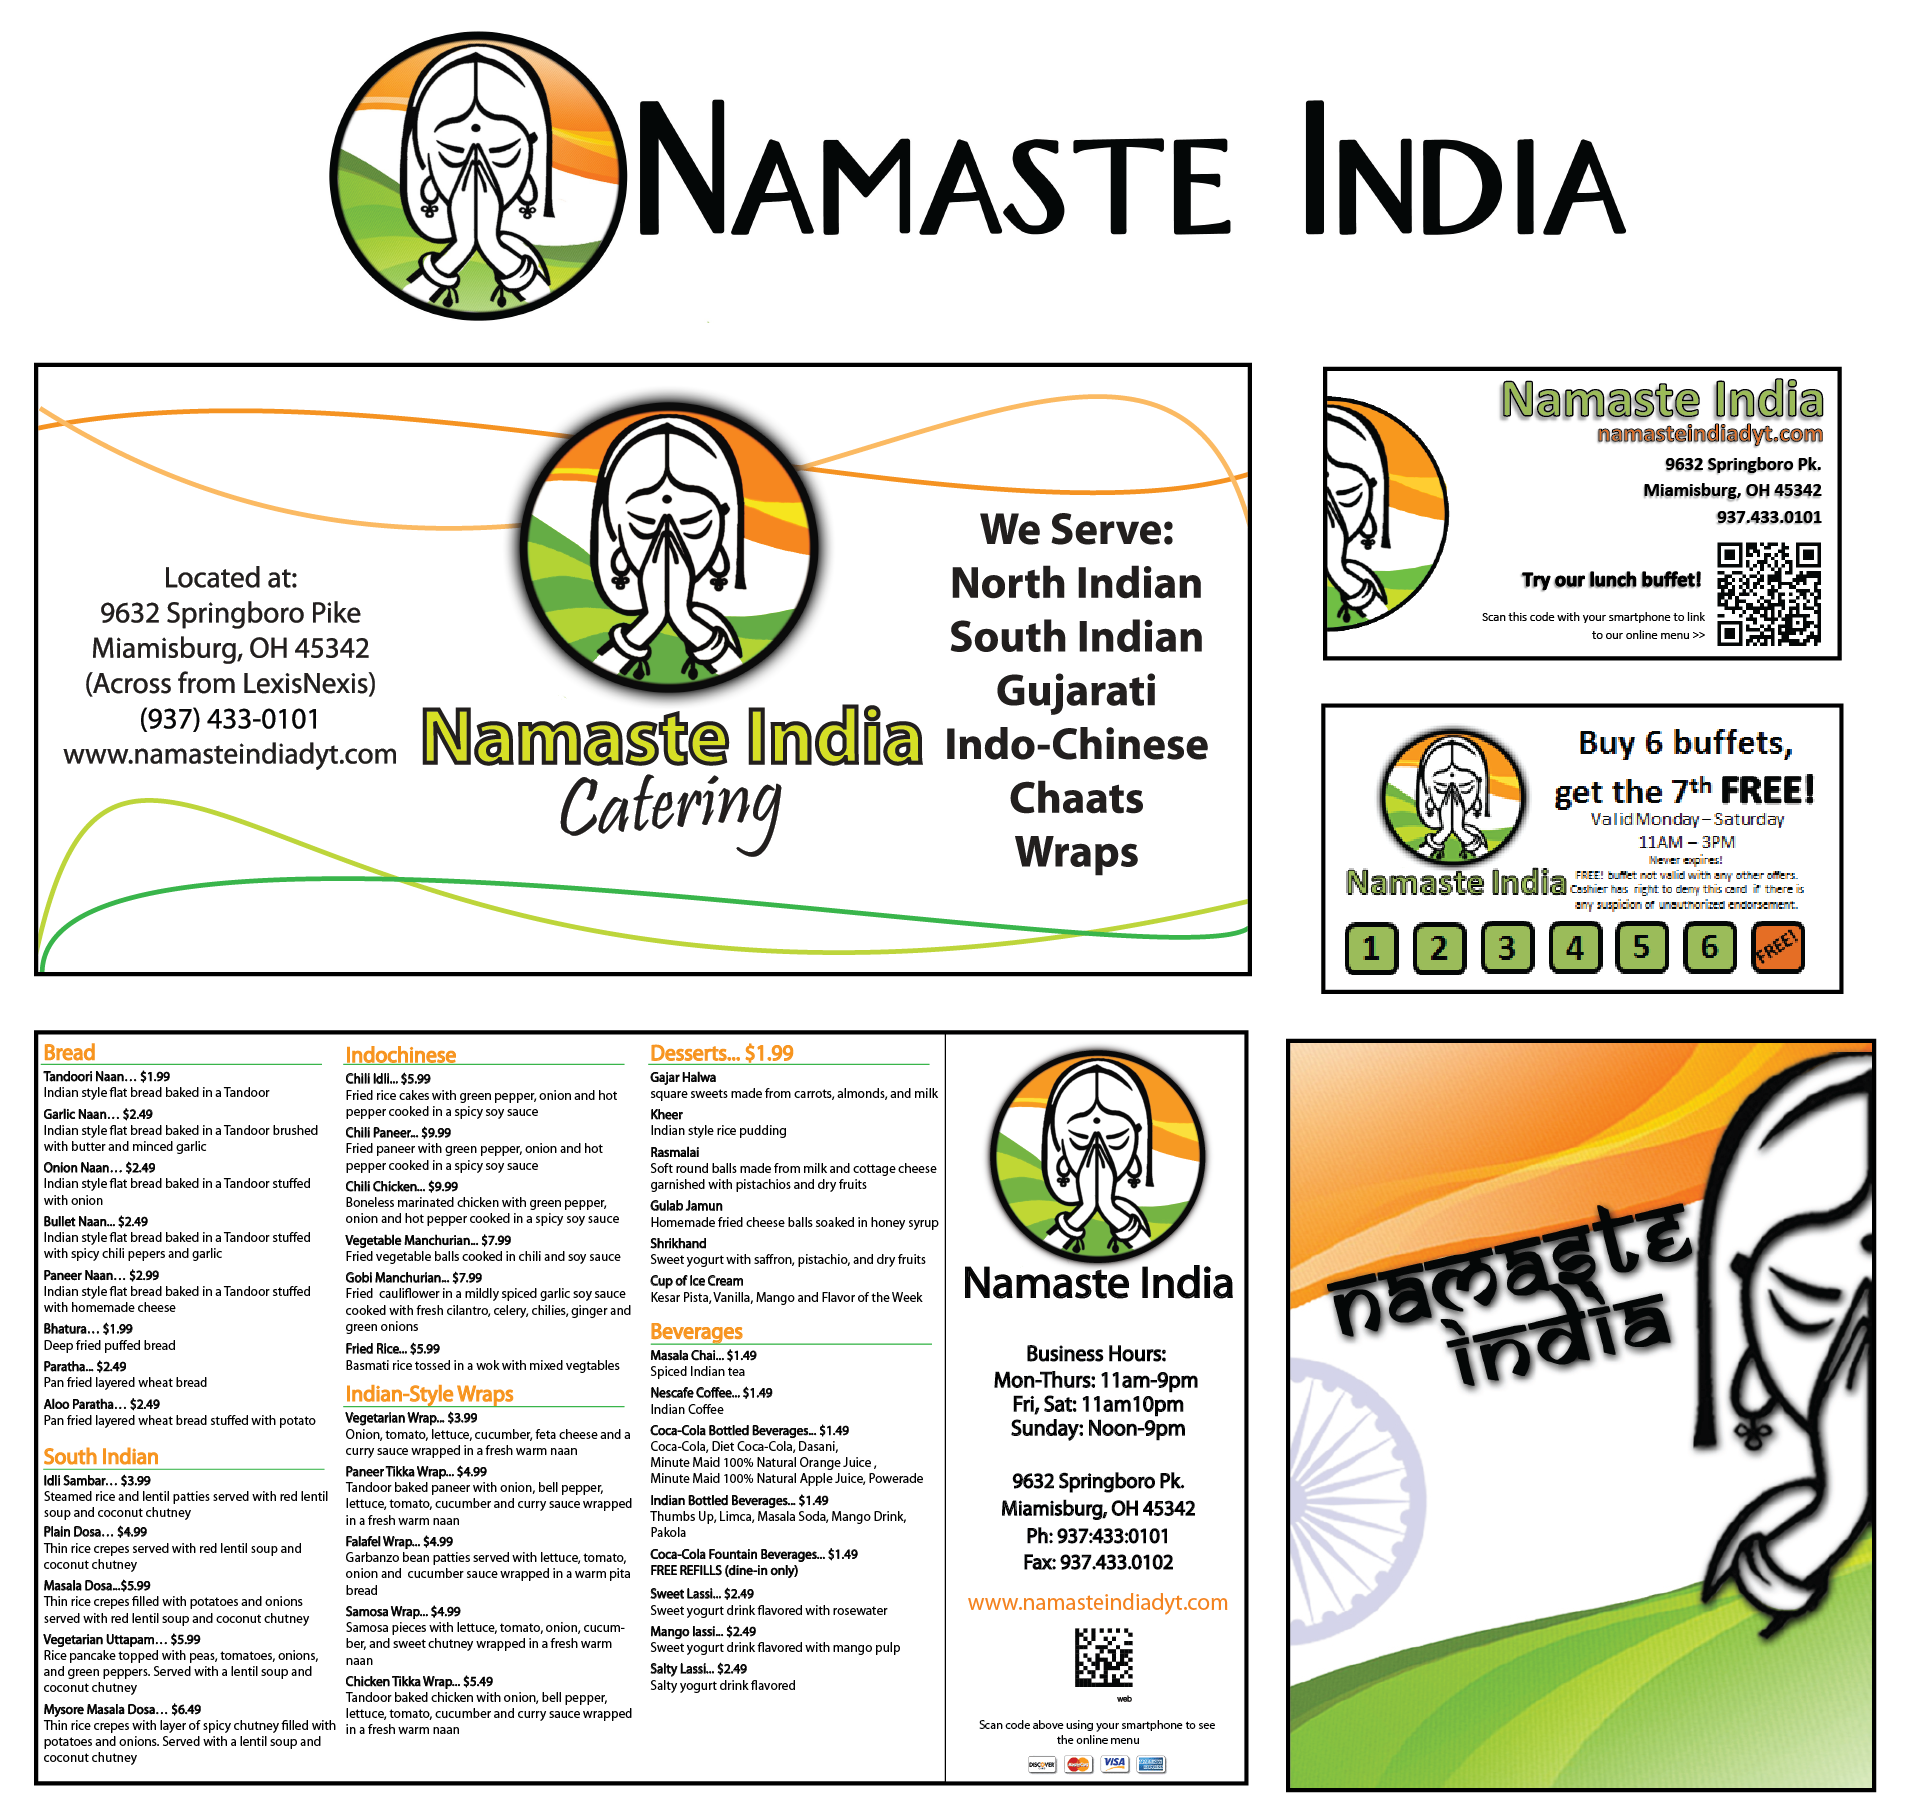 NAMASTE INDIADAYTON-BASED RESTAURANT - SUNNY SCENES DEVELOPED LOGO, MENUS, BUSINESS CARDS, AND VARIOUS OTHER PRINT-BASED MARKETING MATERIALS